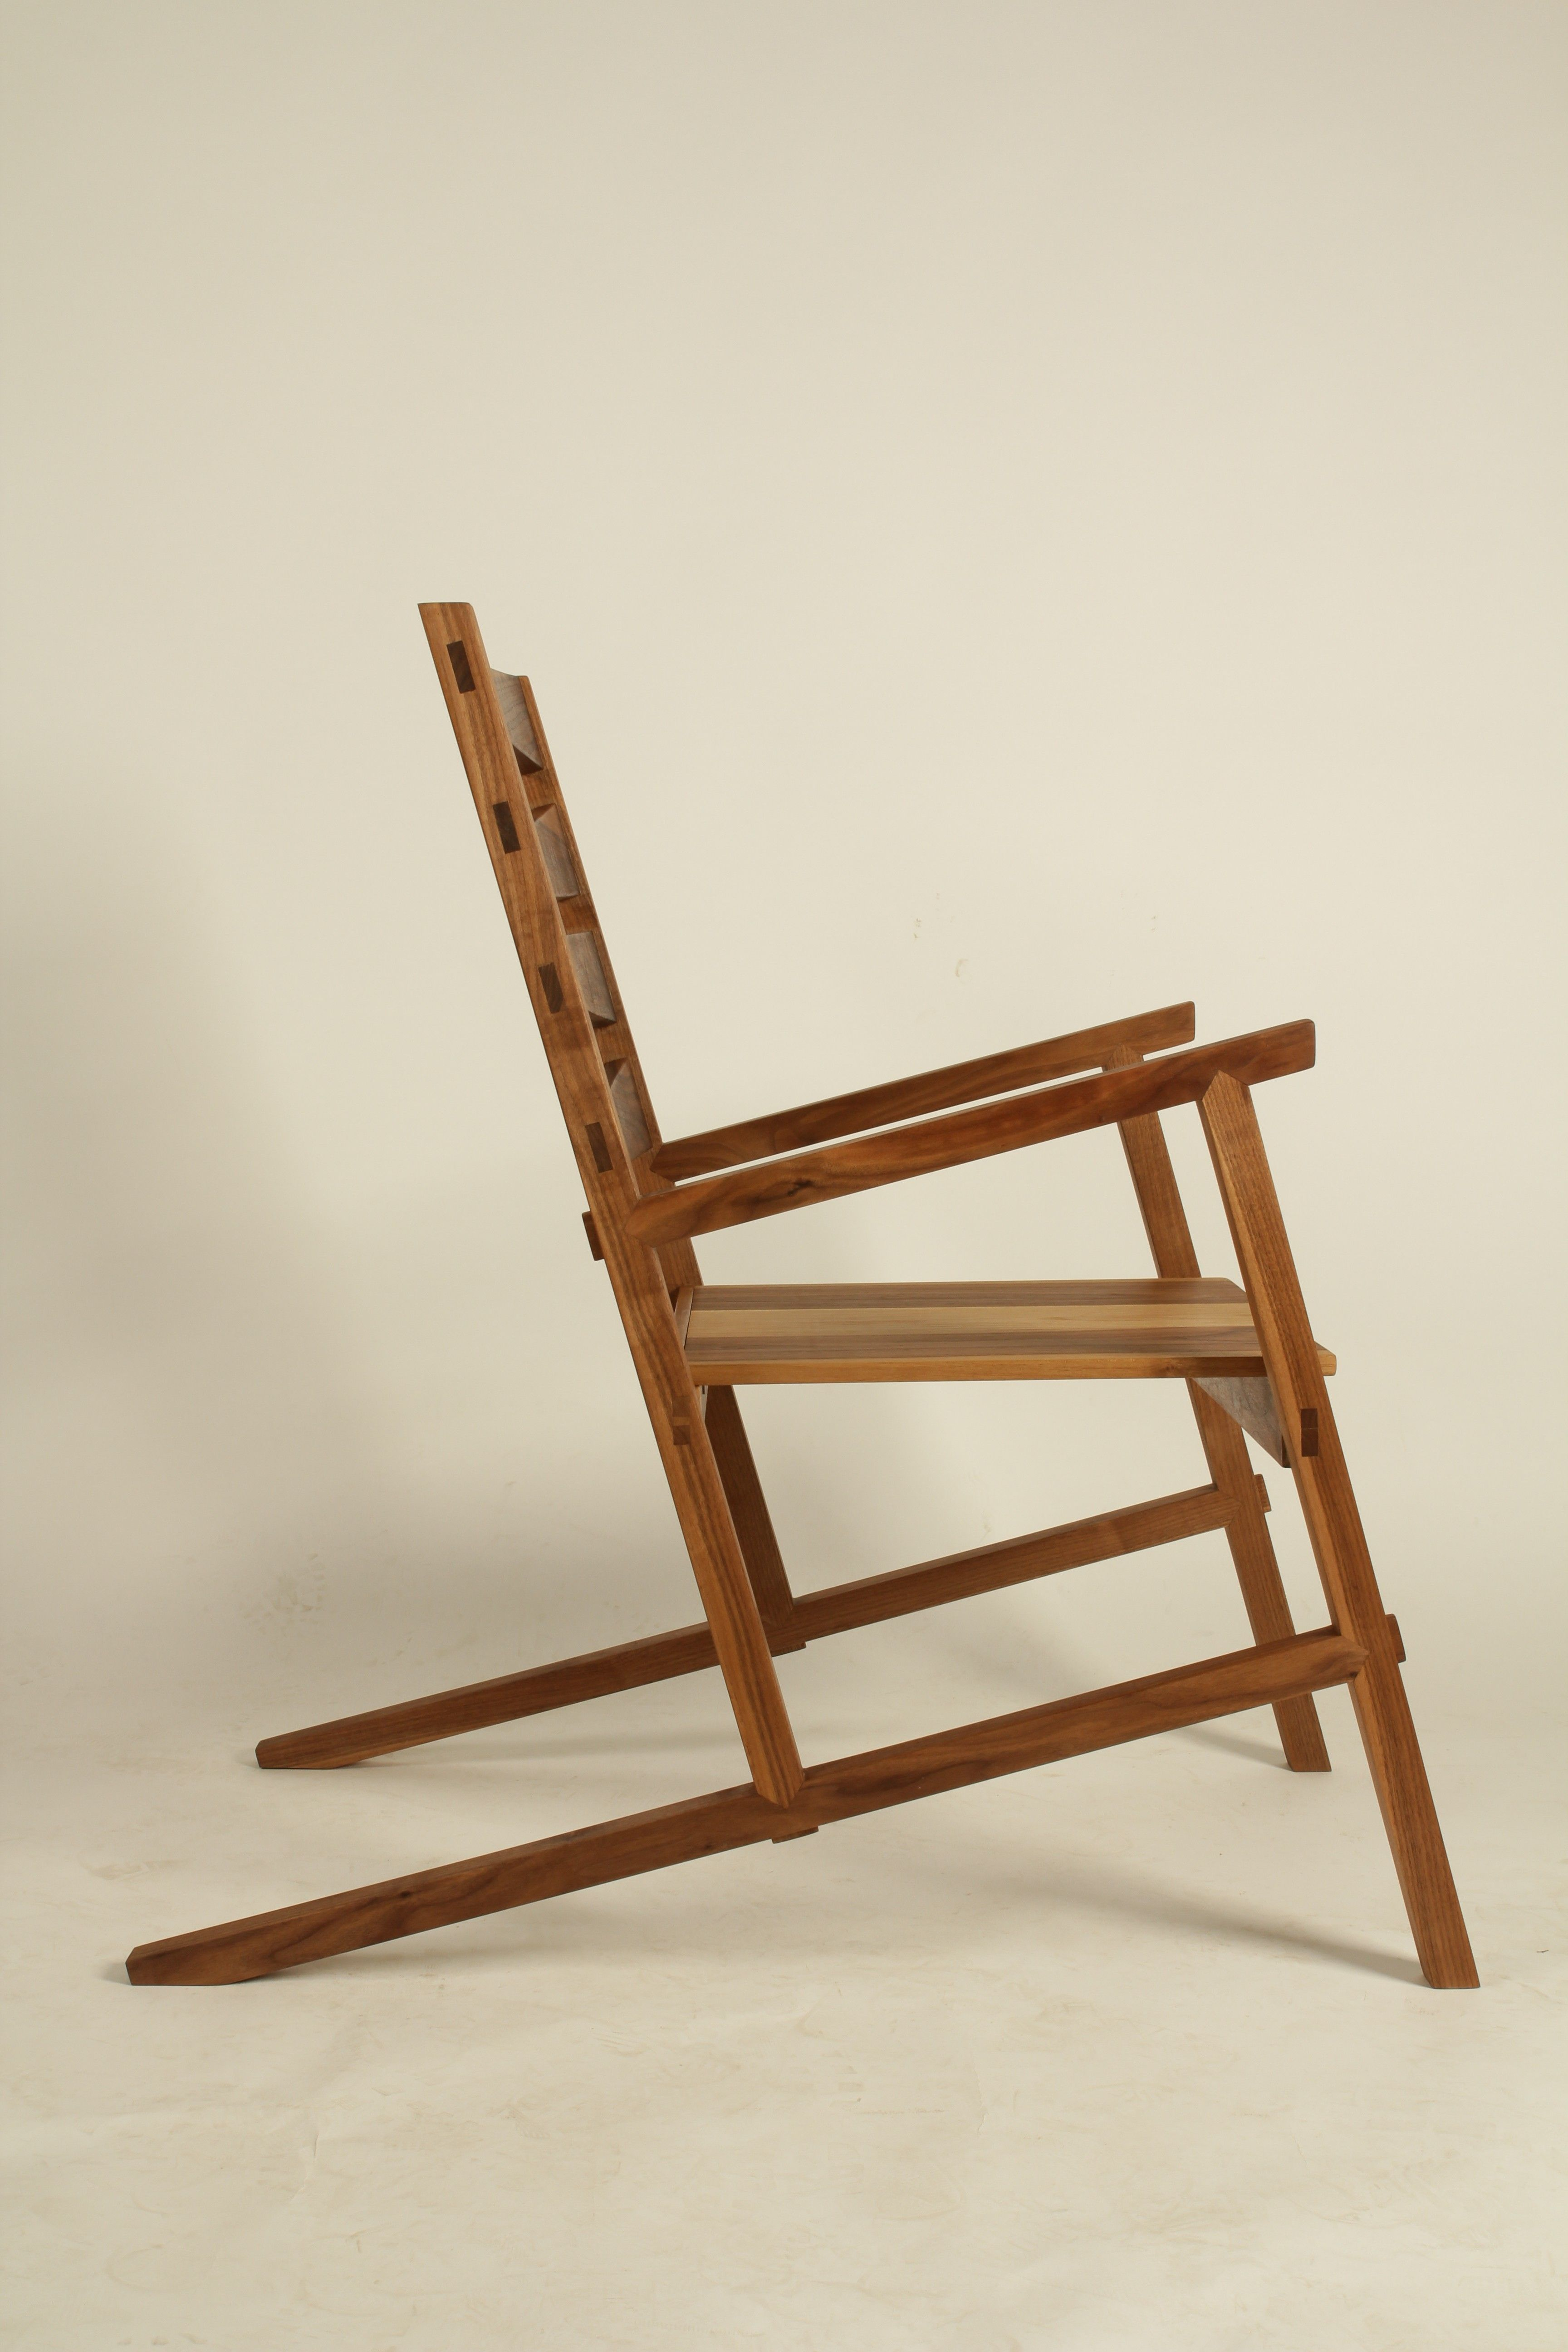 Surprising Beak Of Swallow Joints Chair Readers Gallery Fine Theyellowbook Wood Chair Design Ideas Theyellowbookinfo